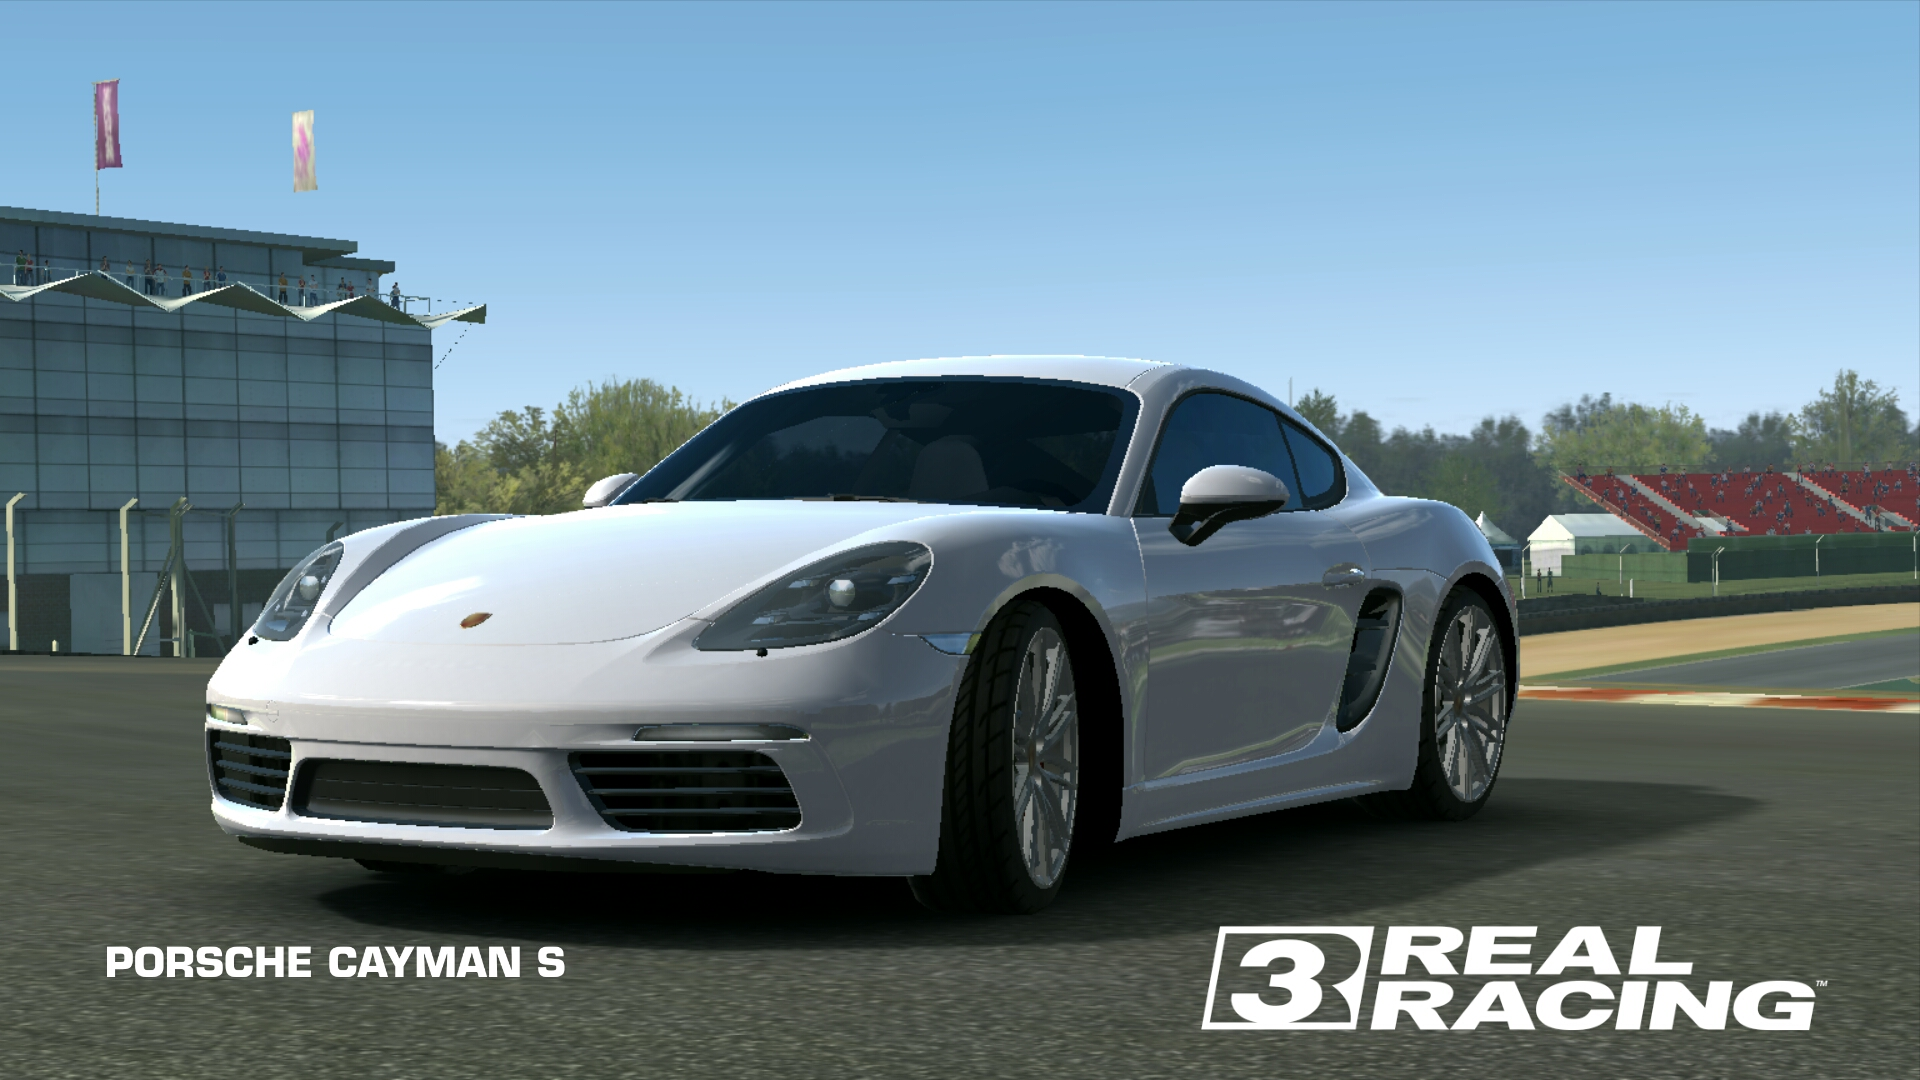 PORSCHE CAYMAN S | Real Racing 3 Wiki | FANDOM powered by Wikia on red cayman, black cayman, boxster cayman, silver cayman, porsha cayman, ferrari cayman, kia cayman, chevy cayman, speedart cayman, 9ff cayman, techart cayman, tuned cayman, ruf cayman, body motion cayman,